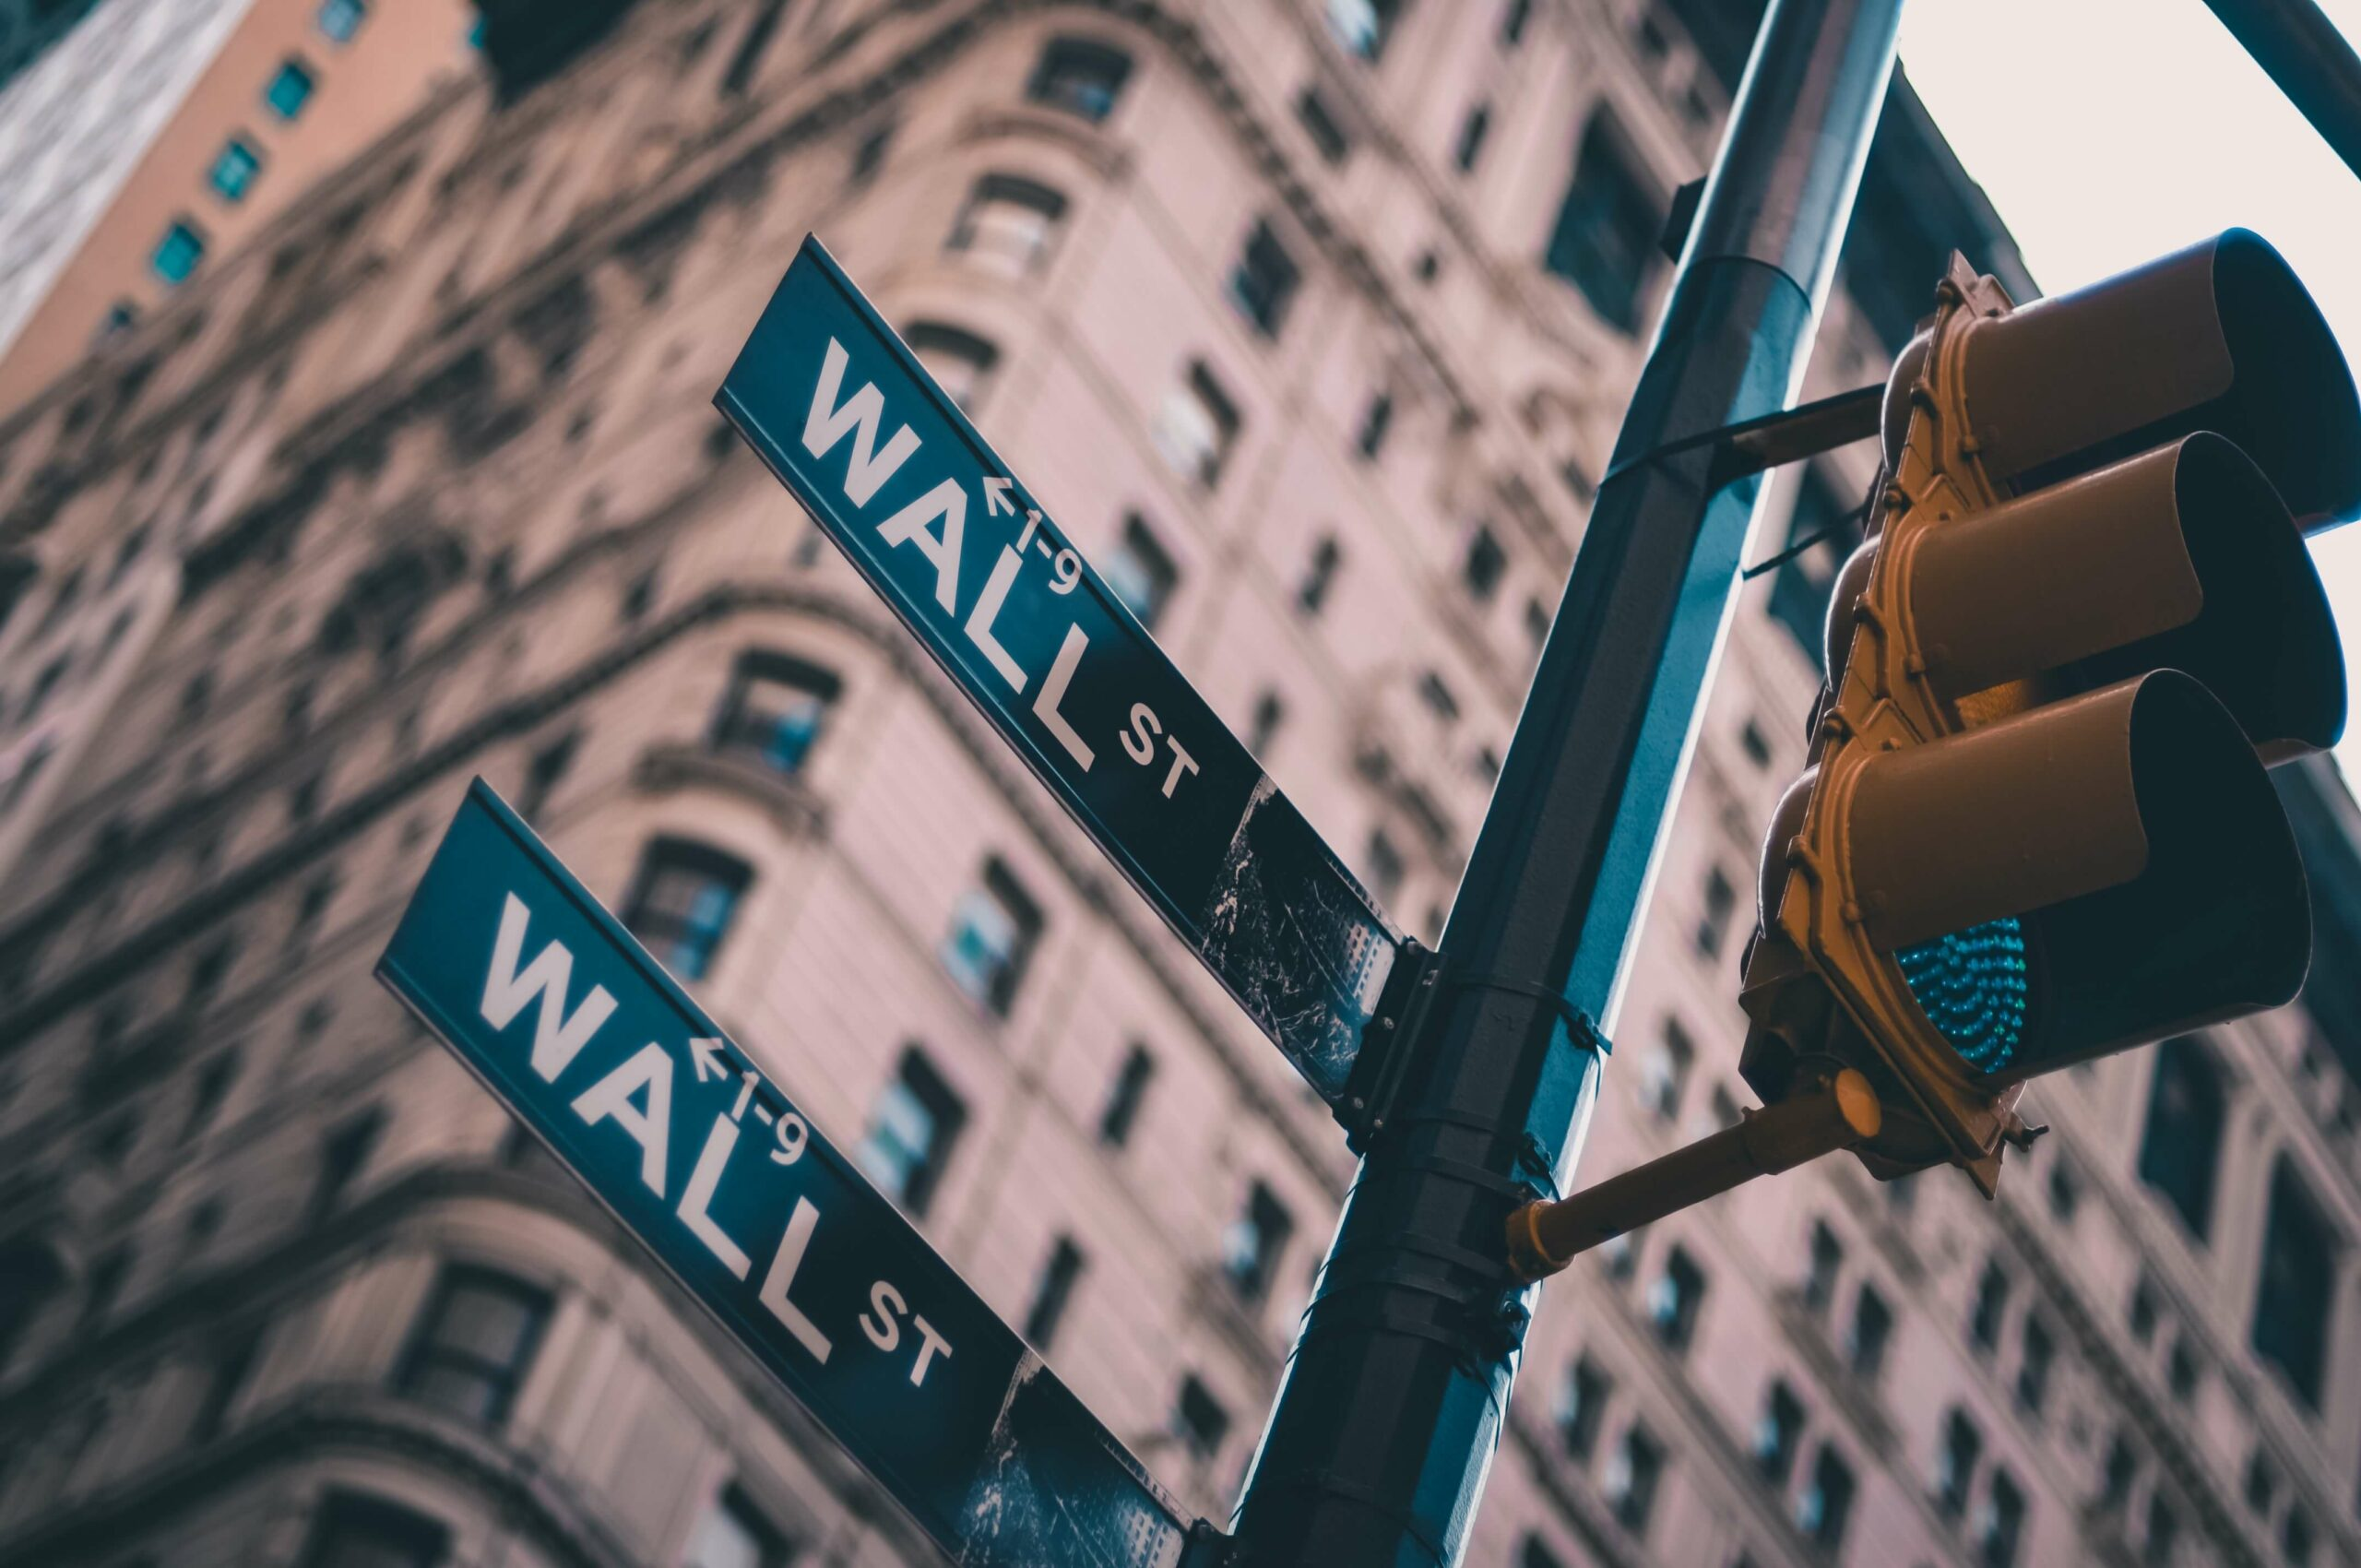 wall st street sign and traffic sign